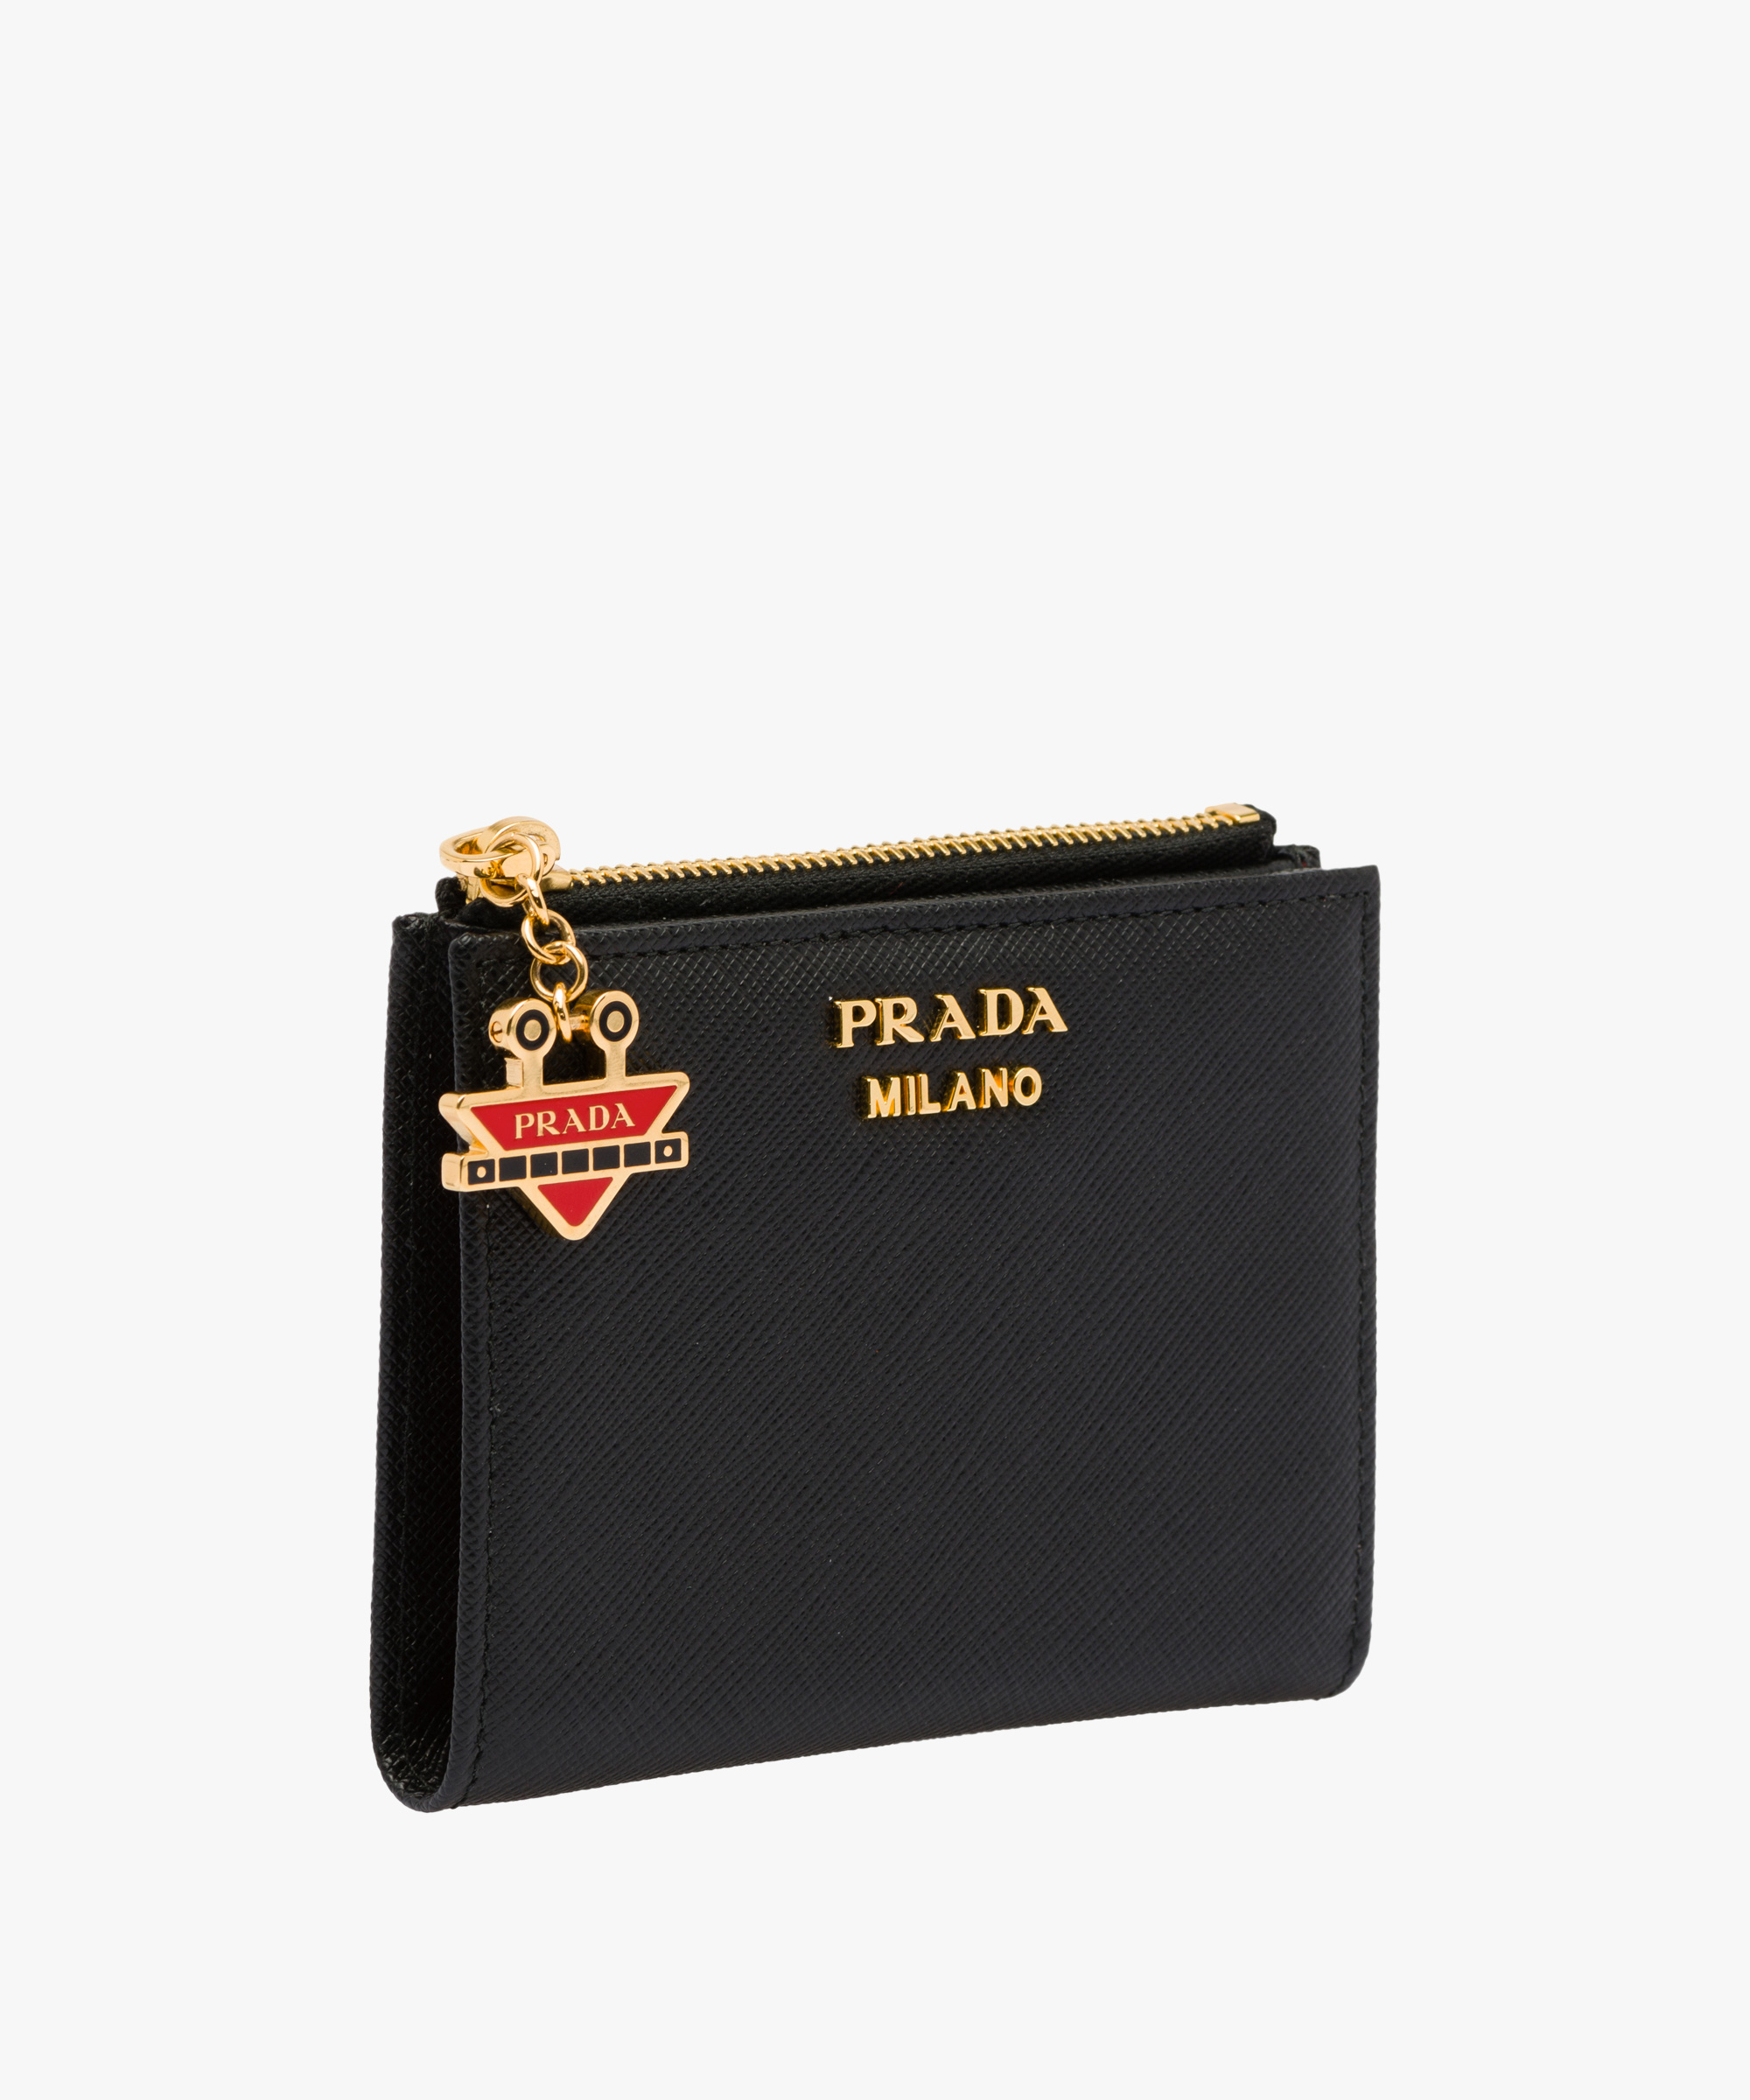 42095b4d7e93 ... Small Saffiano leather wallet Prada BLACK/FIERY RED ...